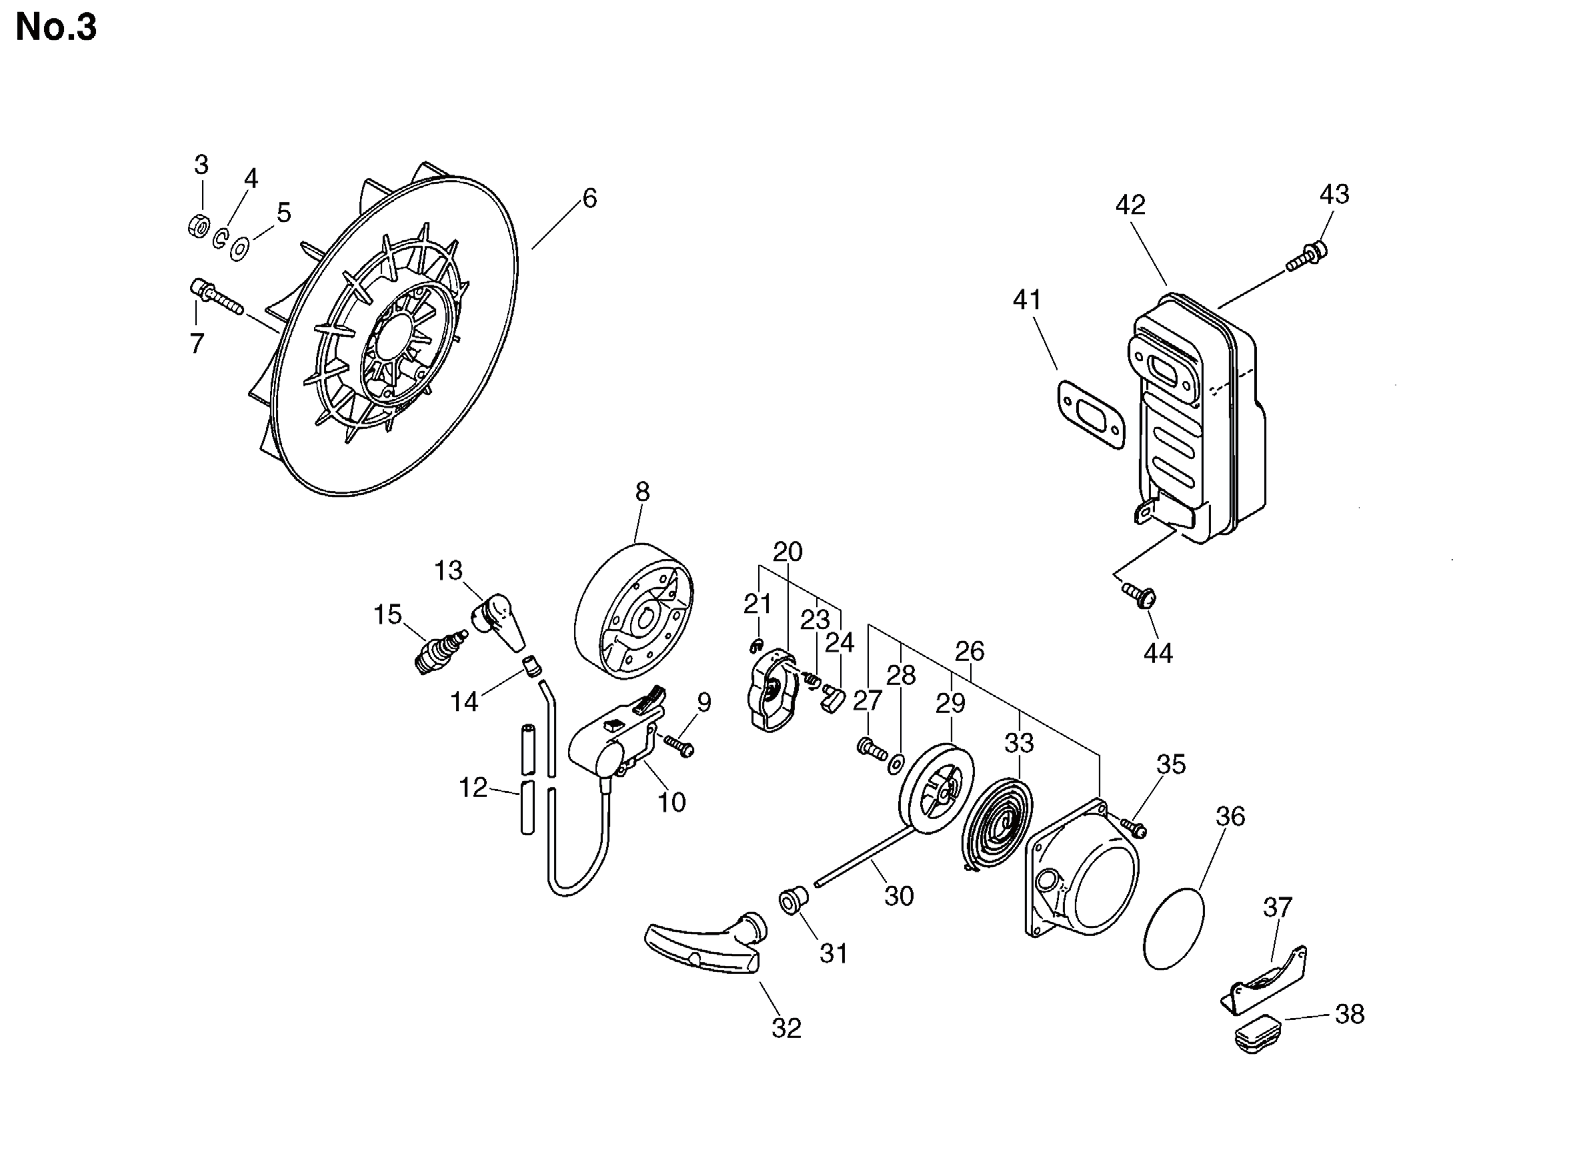 Group:Duster/Mist Blowers Model:DM-4610(SrNr 004334 and before) Section:Starter, Magneto, Muffler Group:Duster/Mist Blowers Model:DM-4610(SrNr 004334 and before) Section:Fan Case, Lower Tank 4